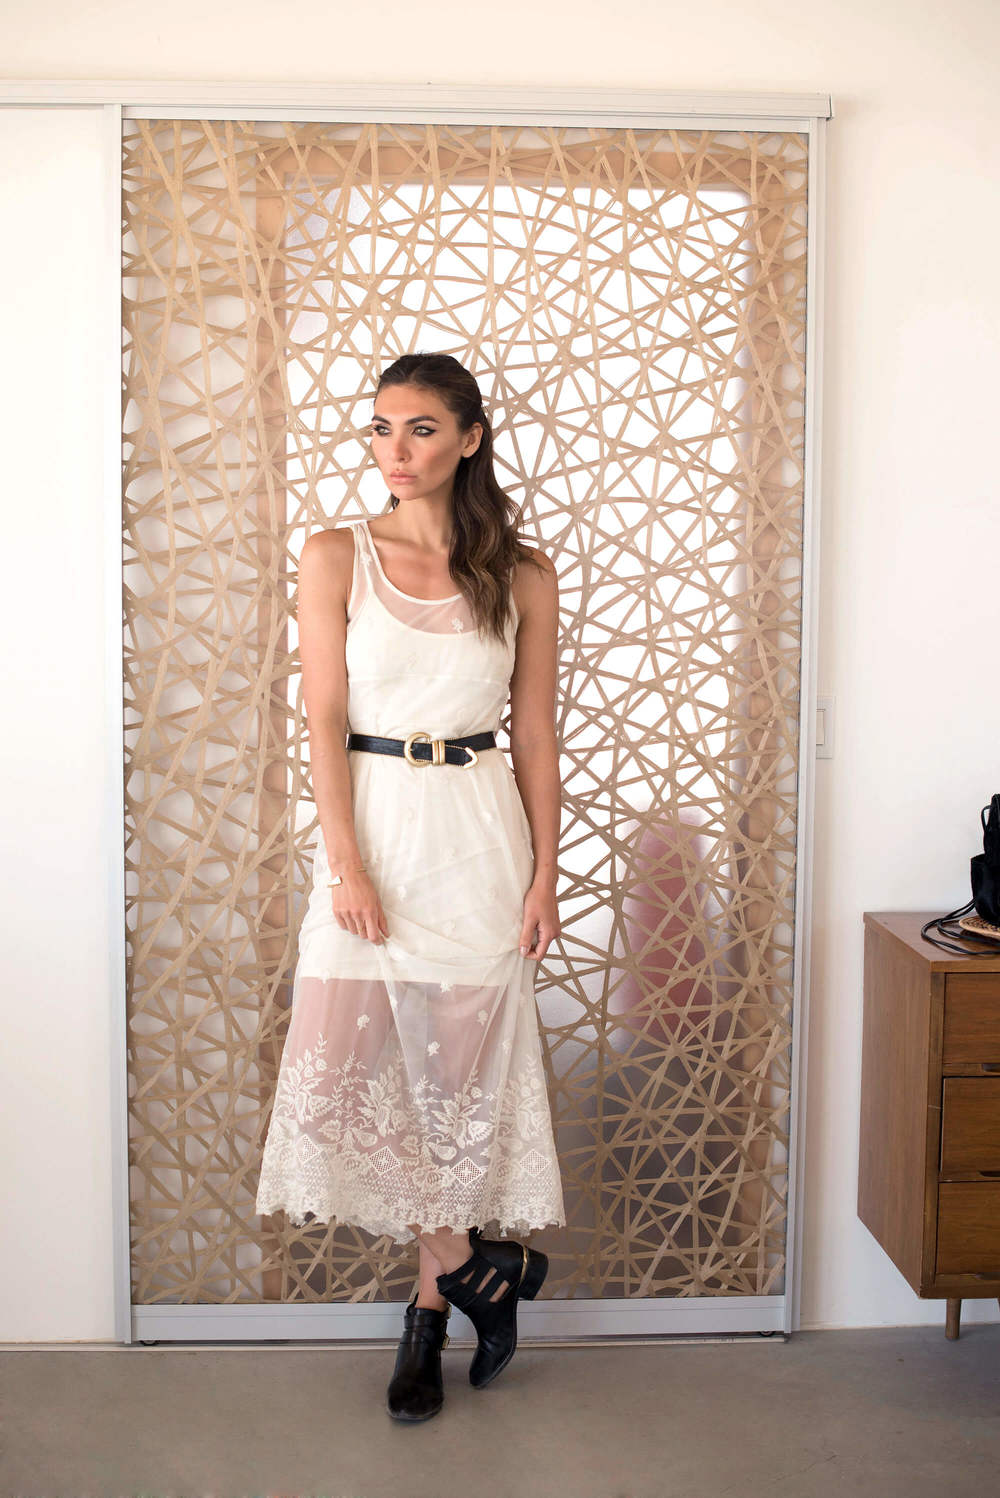 Belted white lace dress